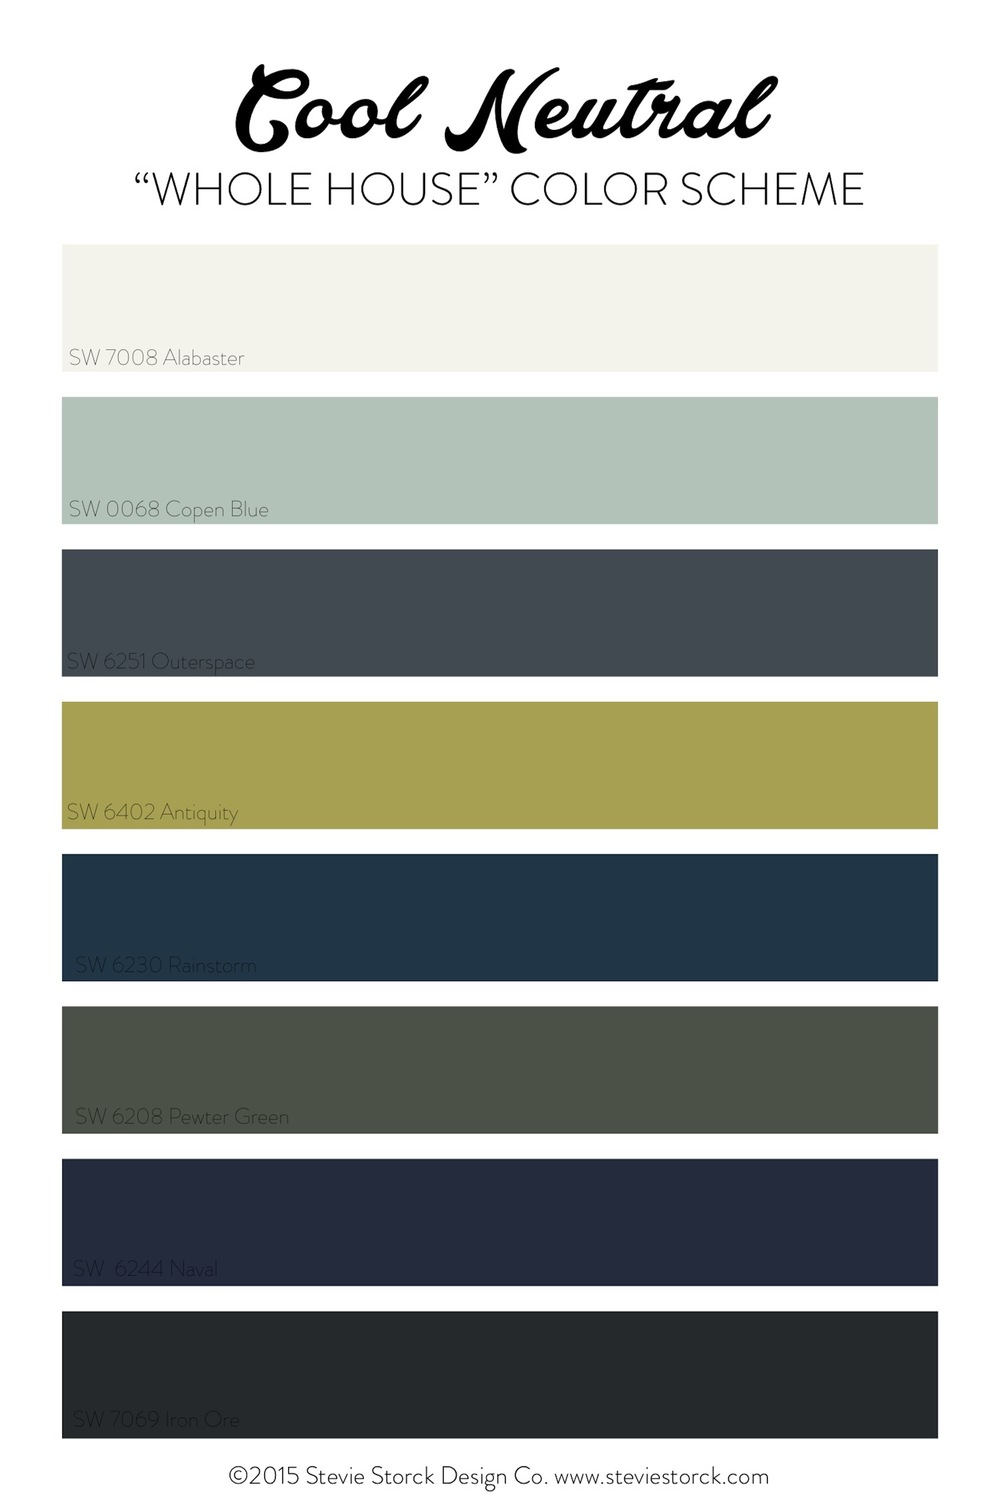 Why I 39 M Using A Whole House Color Scheme Stevie Storck Design Co